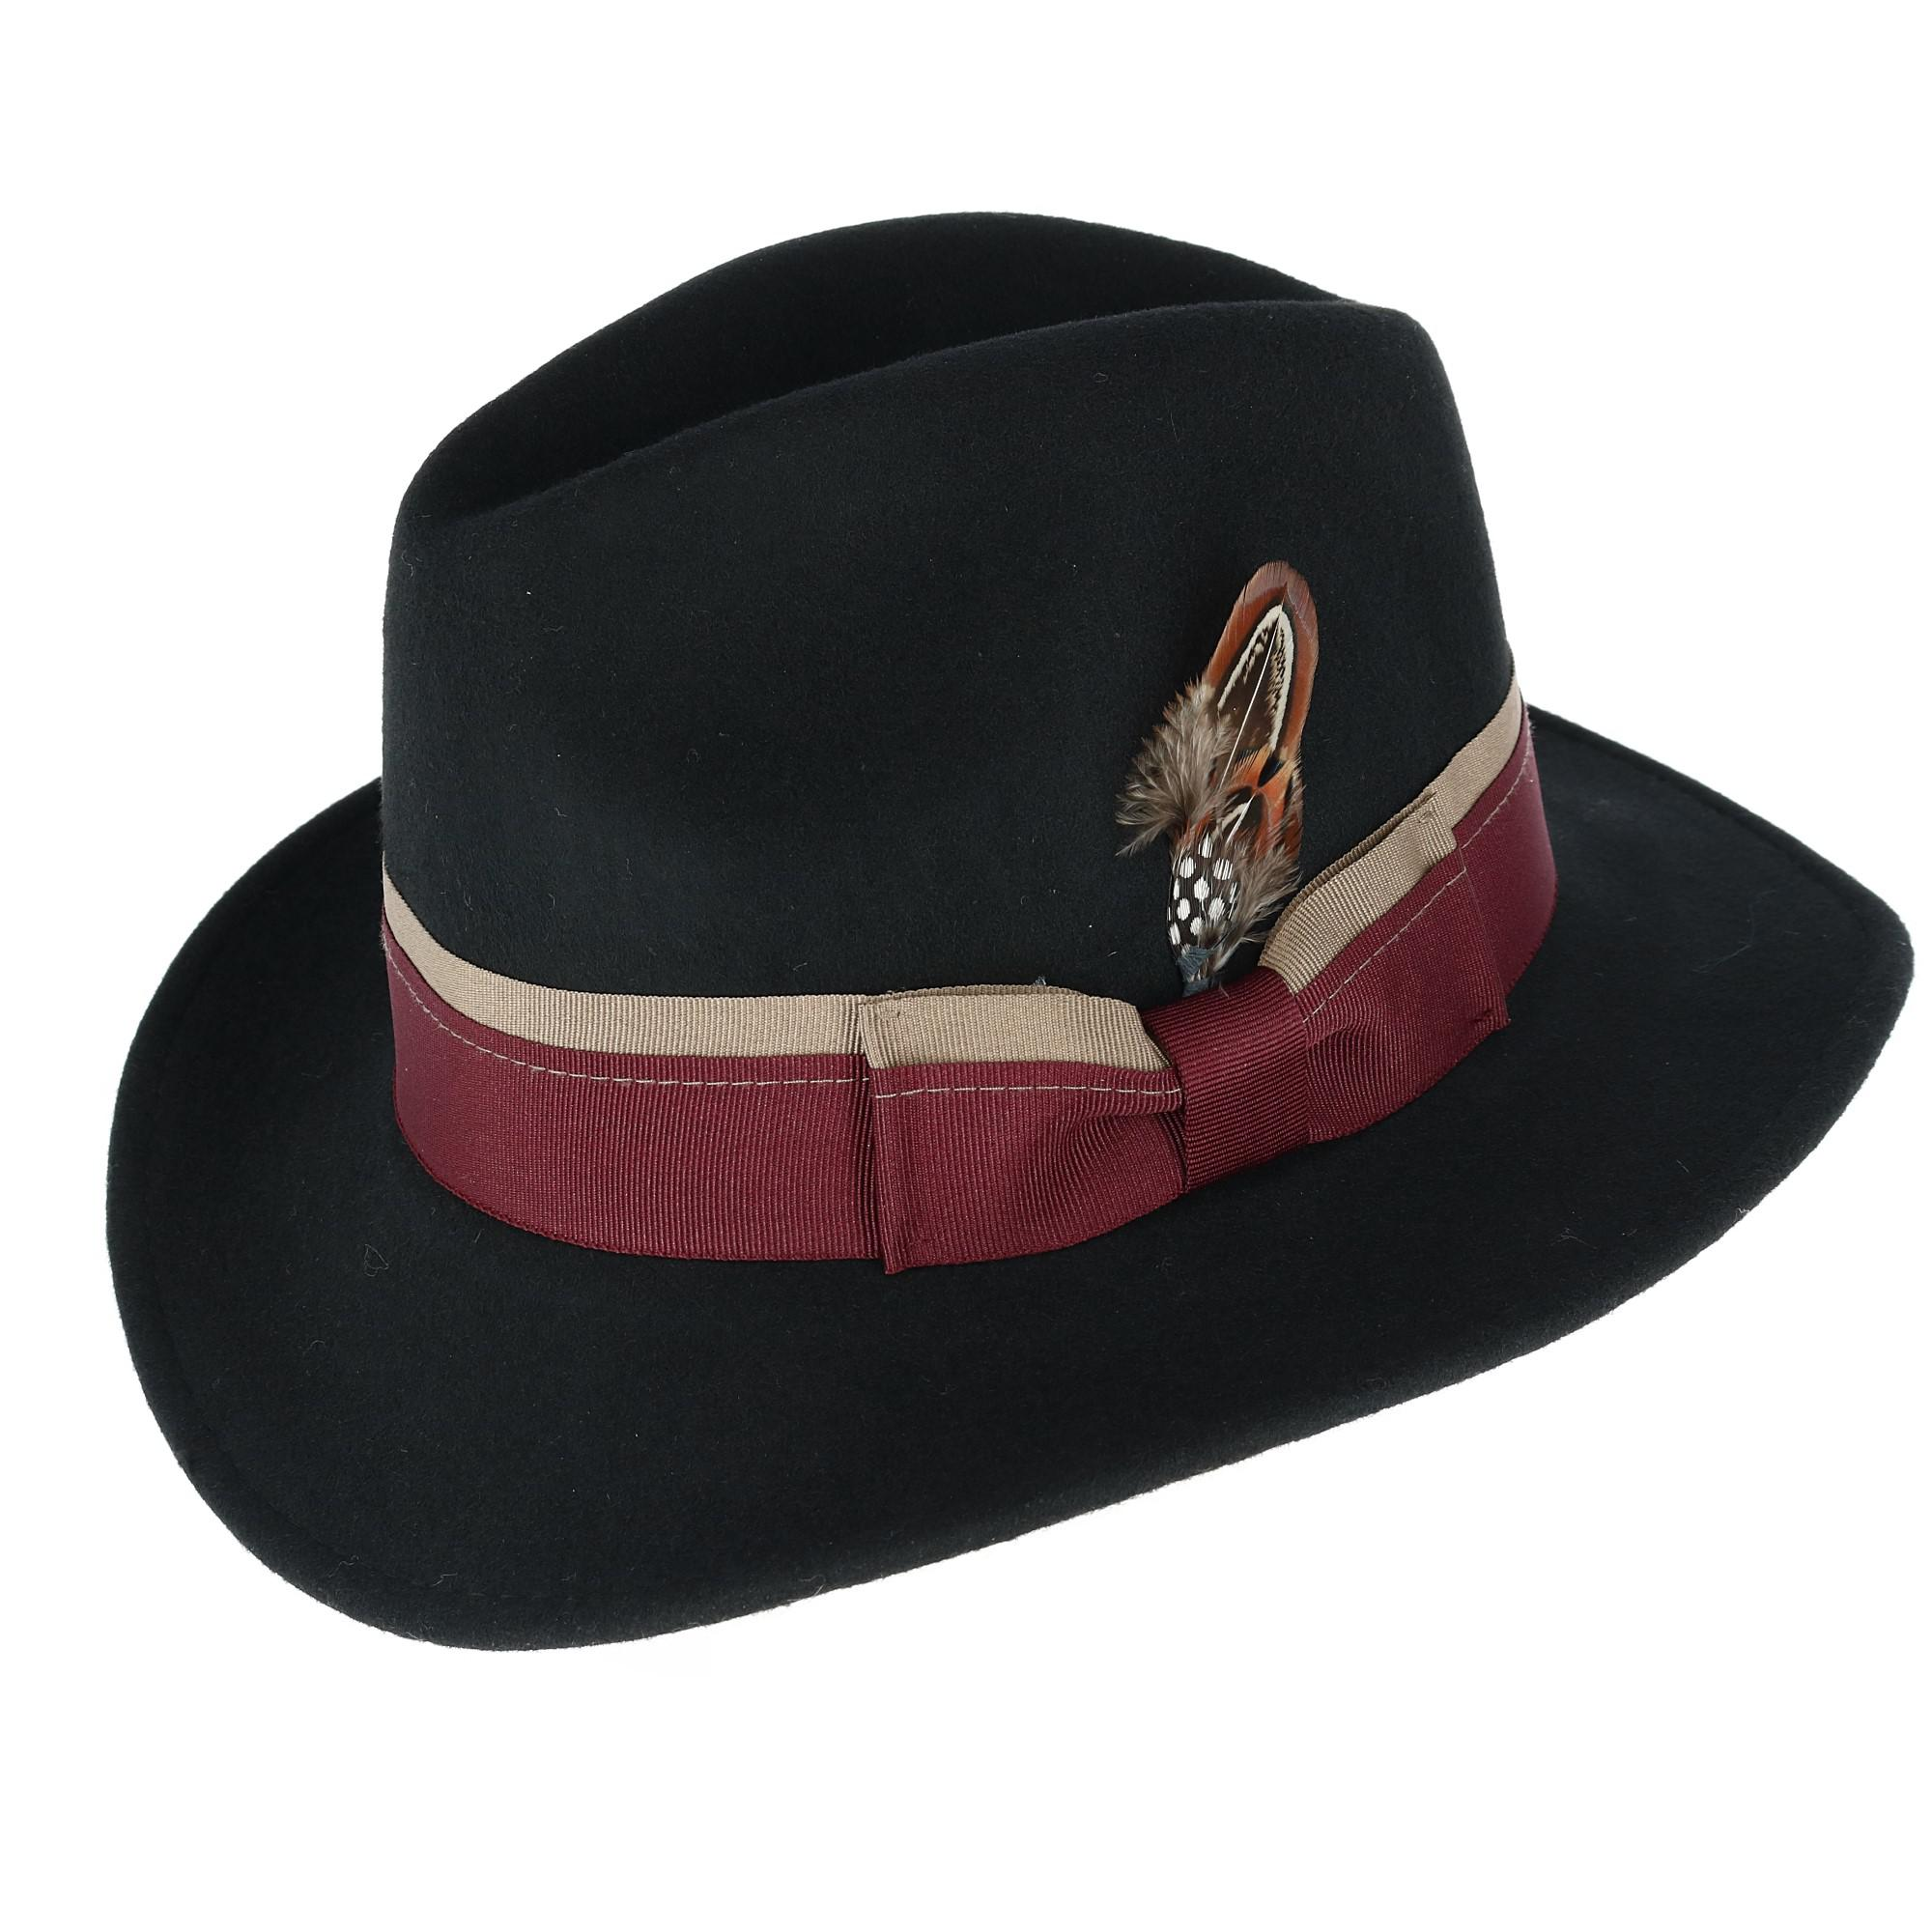 b6fdc7149d378 Broner Men s Down-Turned Brim Fedora with Dual Color Layered Hatband  (BR-7340